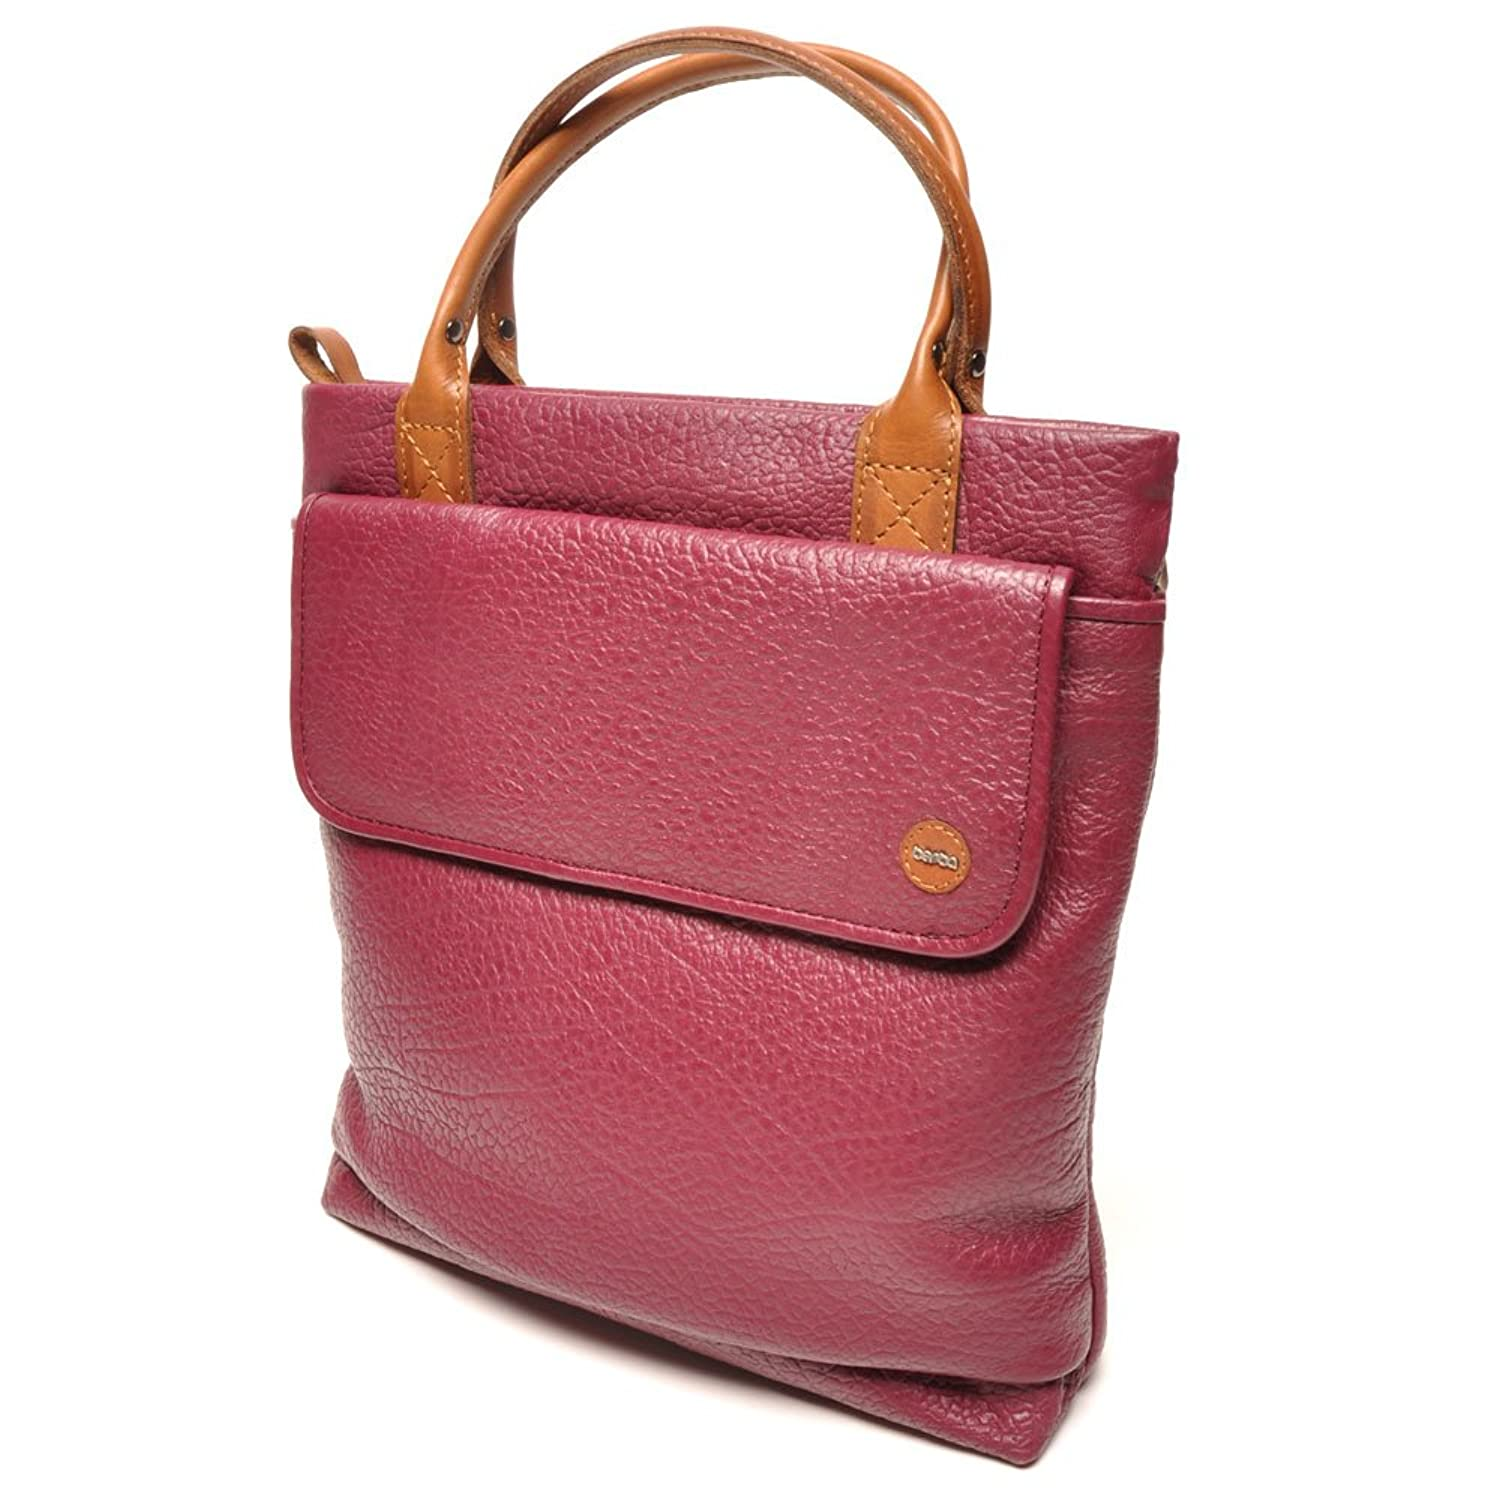 berba Chamonix 458 Handbag in berry